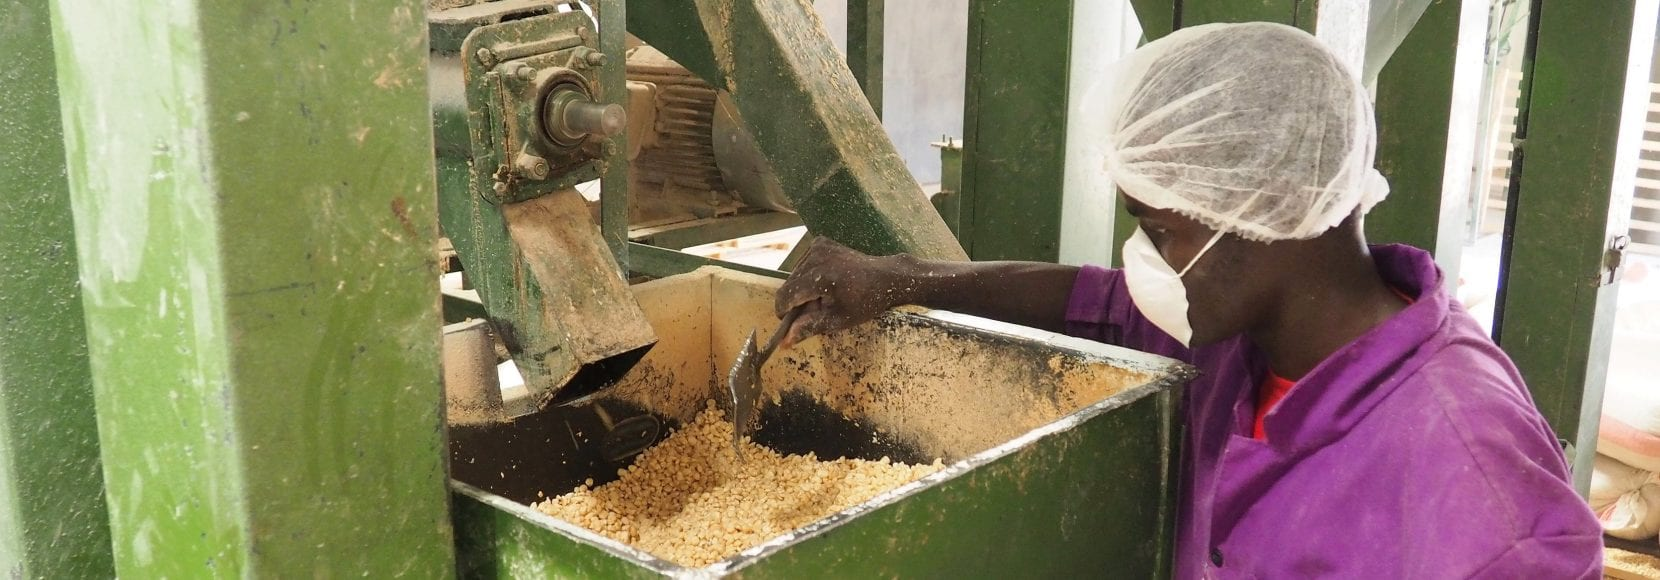 man working at a food processor in Kenya supported by TechnoServe training program SAFE